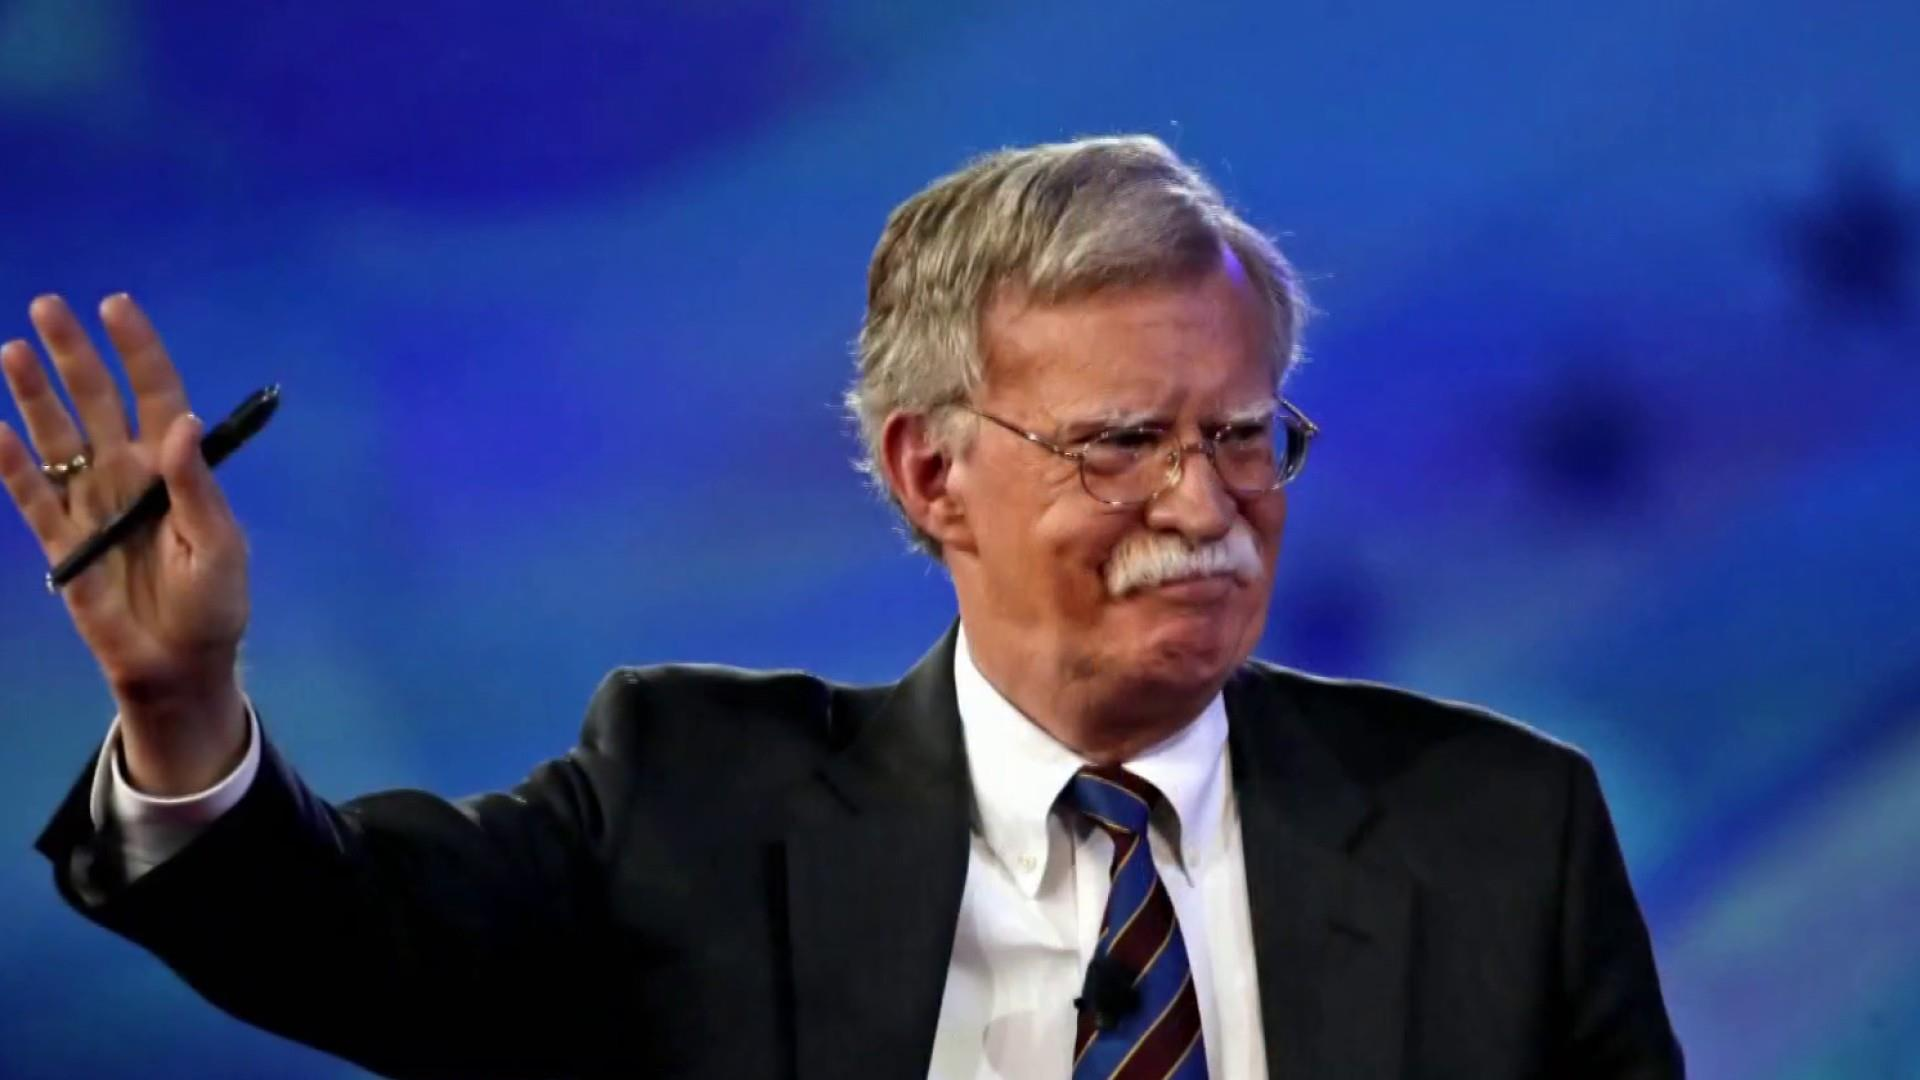 When he wakes, Bolton thinks about nuclear weapons: New Yorker